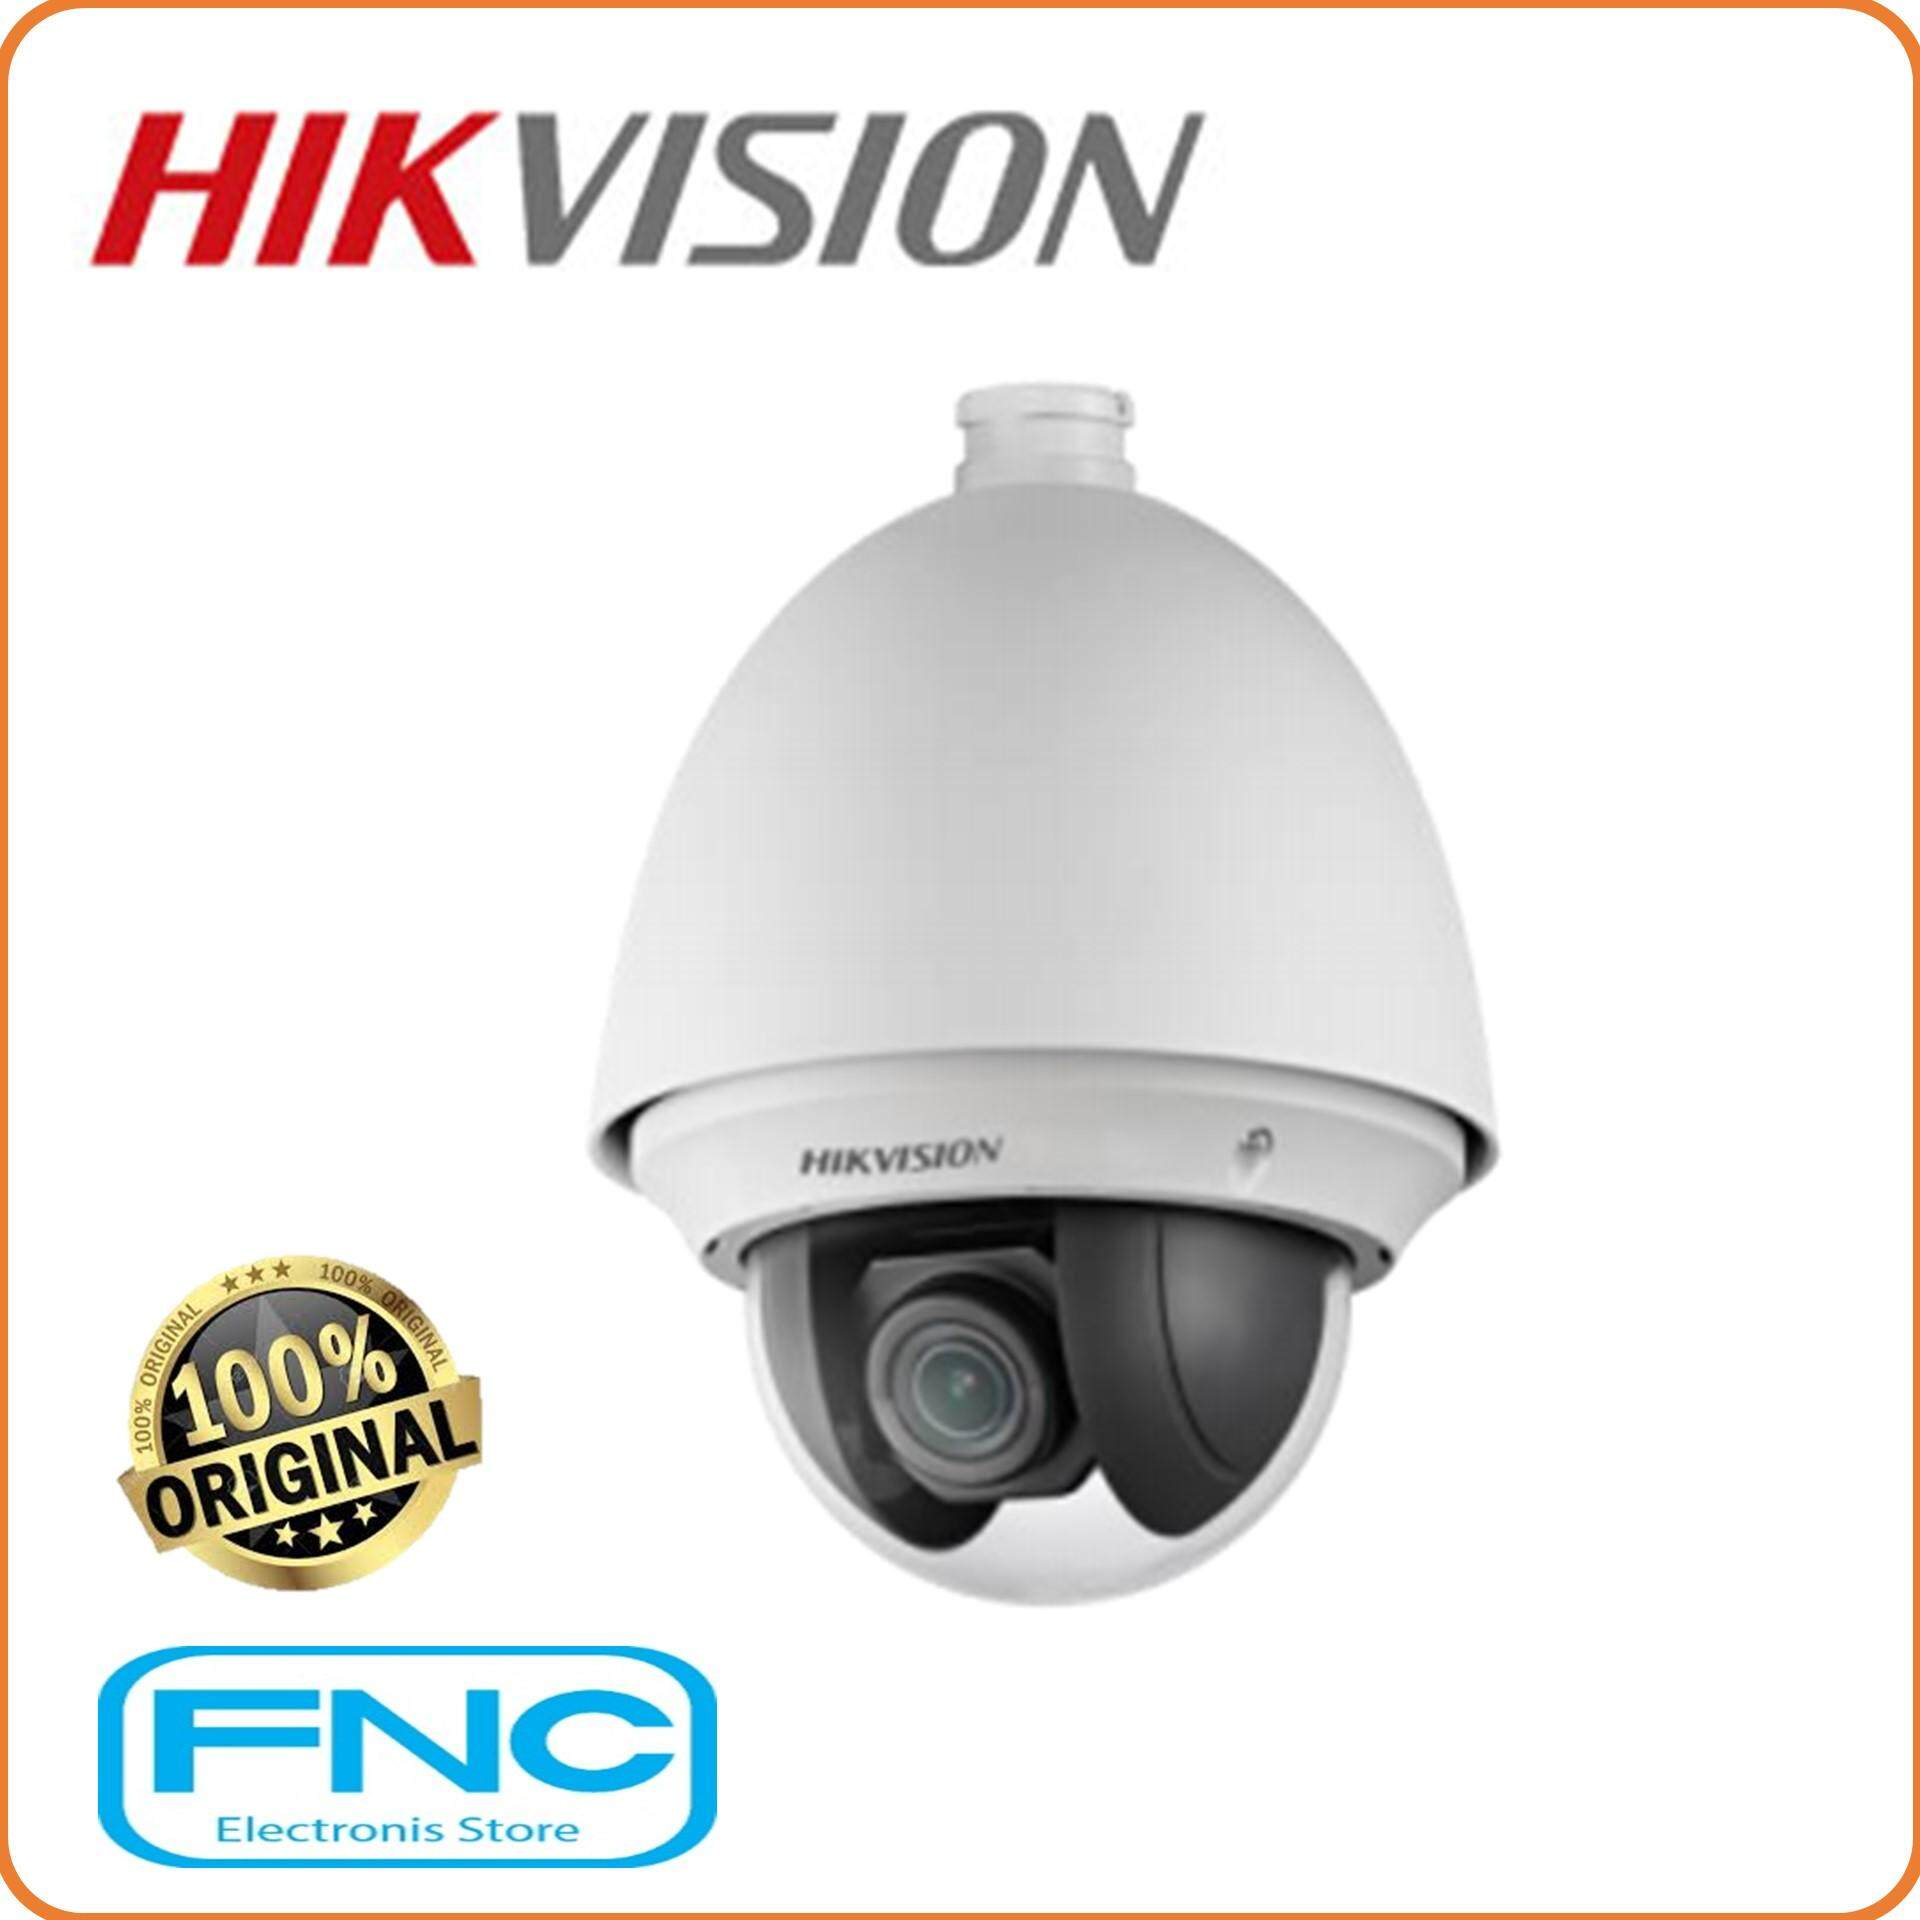 Hikvision Ds-2ae4225t-D Analog 2mp 1080p 25x Optical Zoom 4 In 1 Tvi/ahd/cvi/cvbs Turbo Ptz Dome Camera By Fnc Electronics Store.